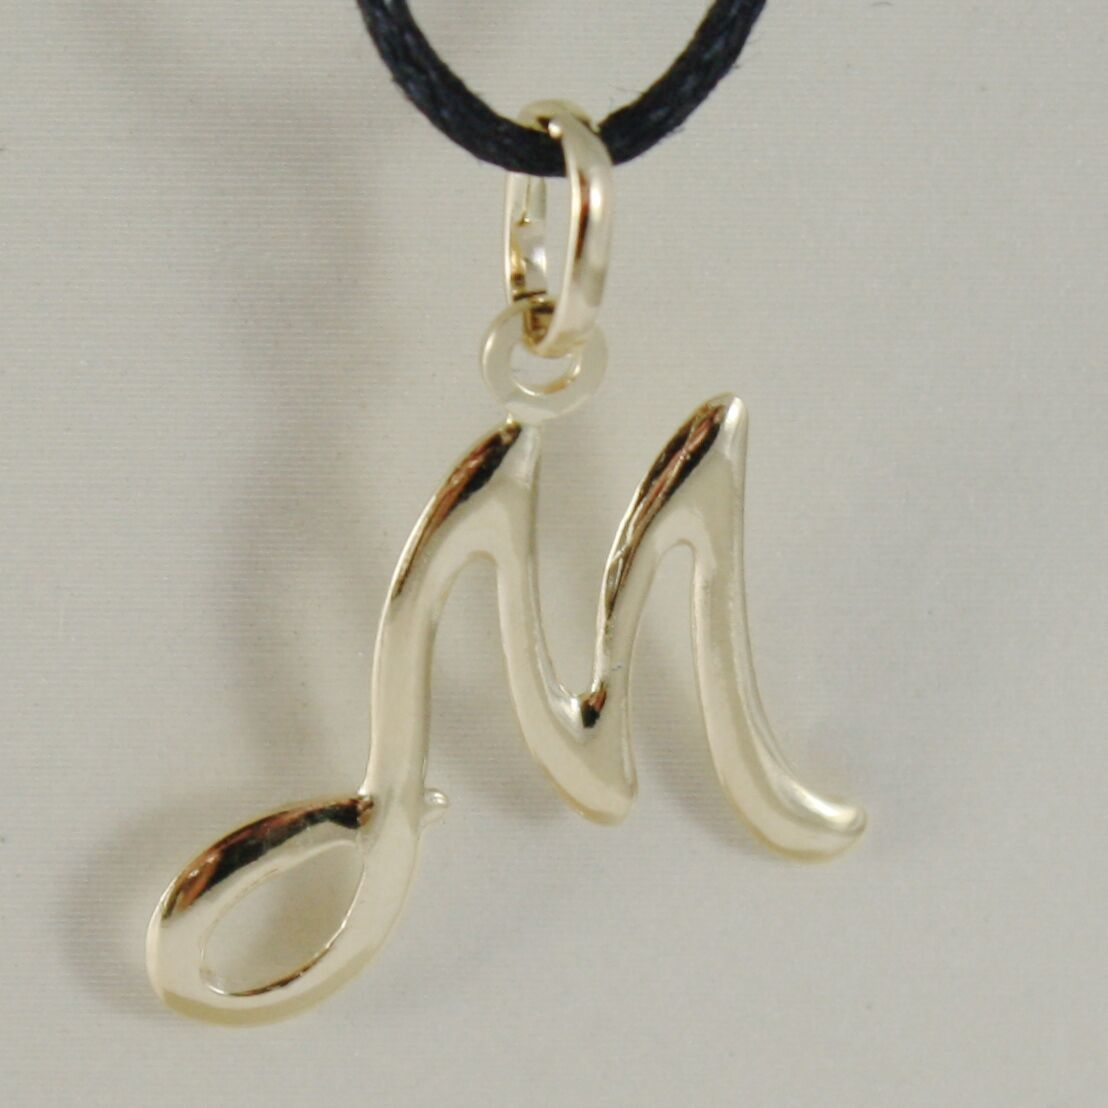 18K YELLOW GOLD PENDANT CHARM INITIAL LETTER M, MADE IN ITALY 1.0 INCHES, 25 MM